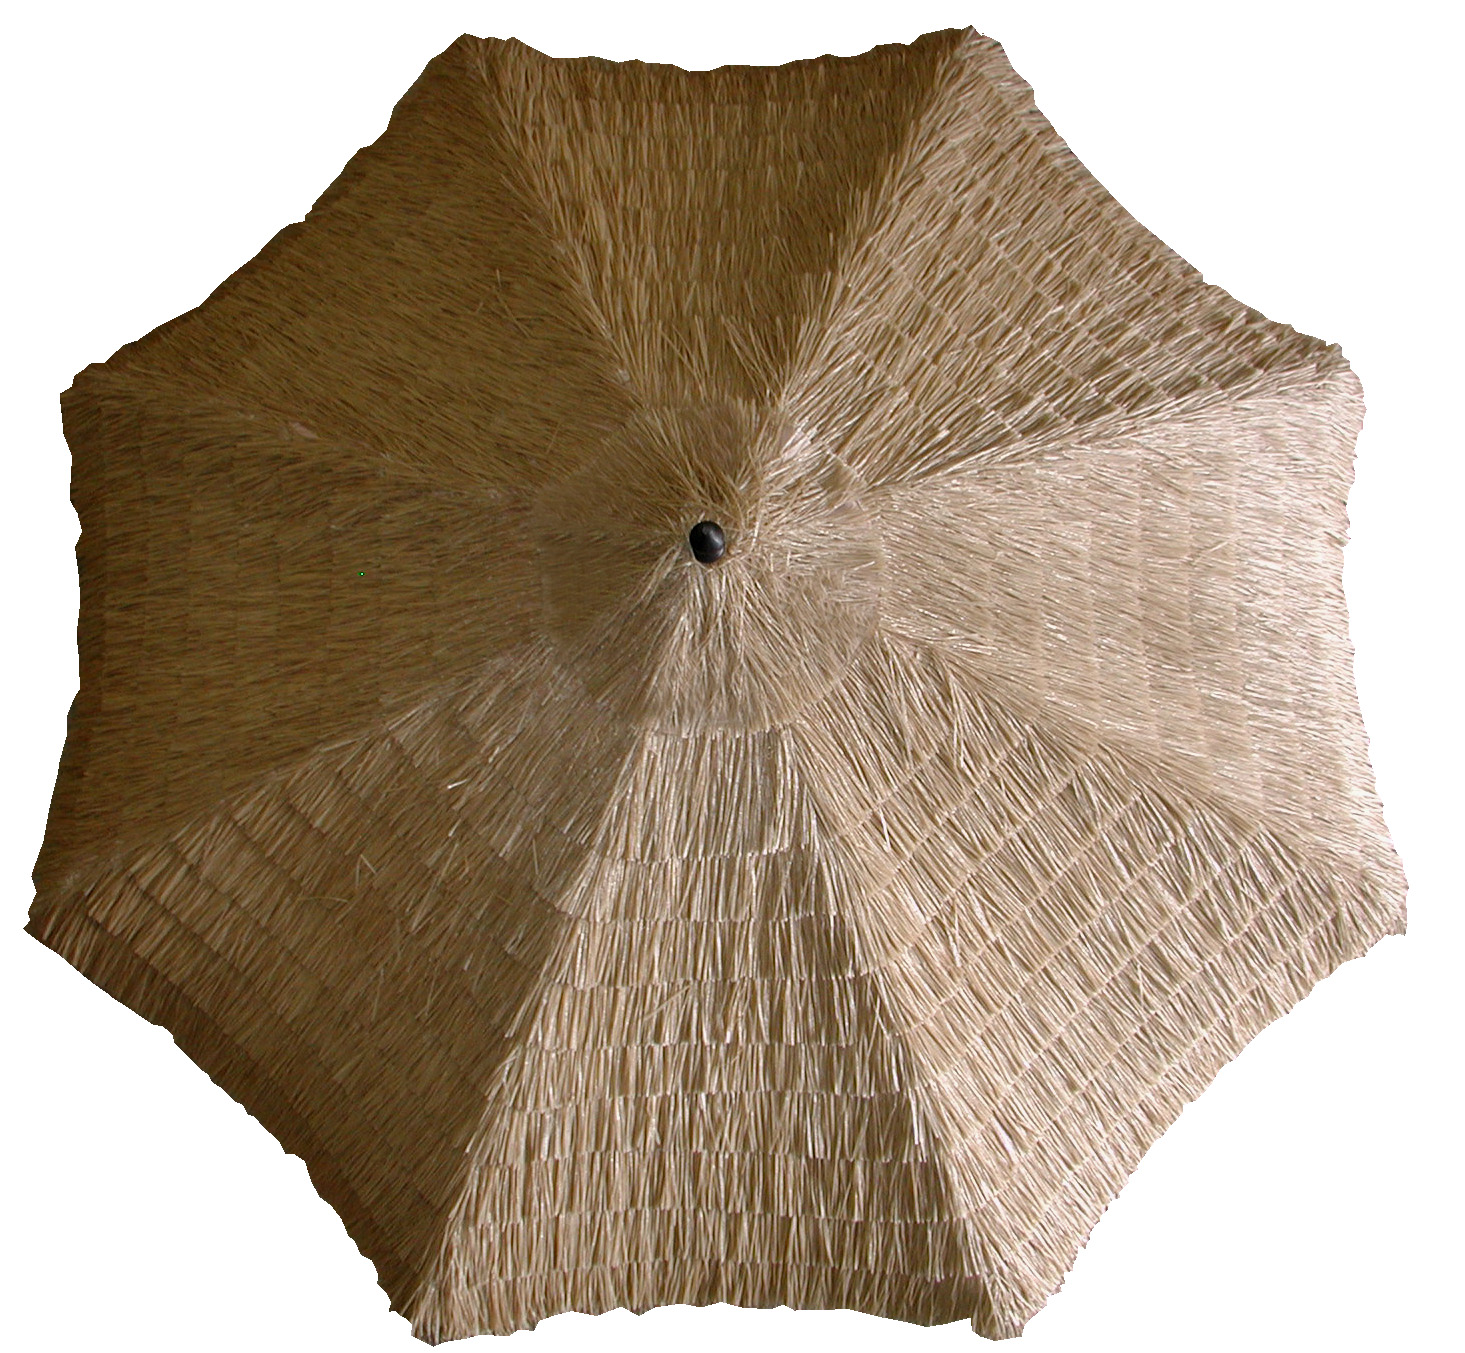 Galtech 9u0027 Thatch Replacement Umbrella Canopy  sc 1 st  Patio Umbrella Store : patio umbrella replacement canopy - memphite.com